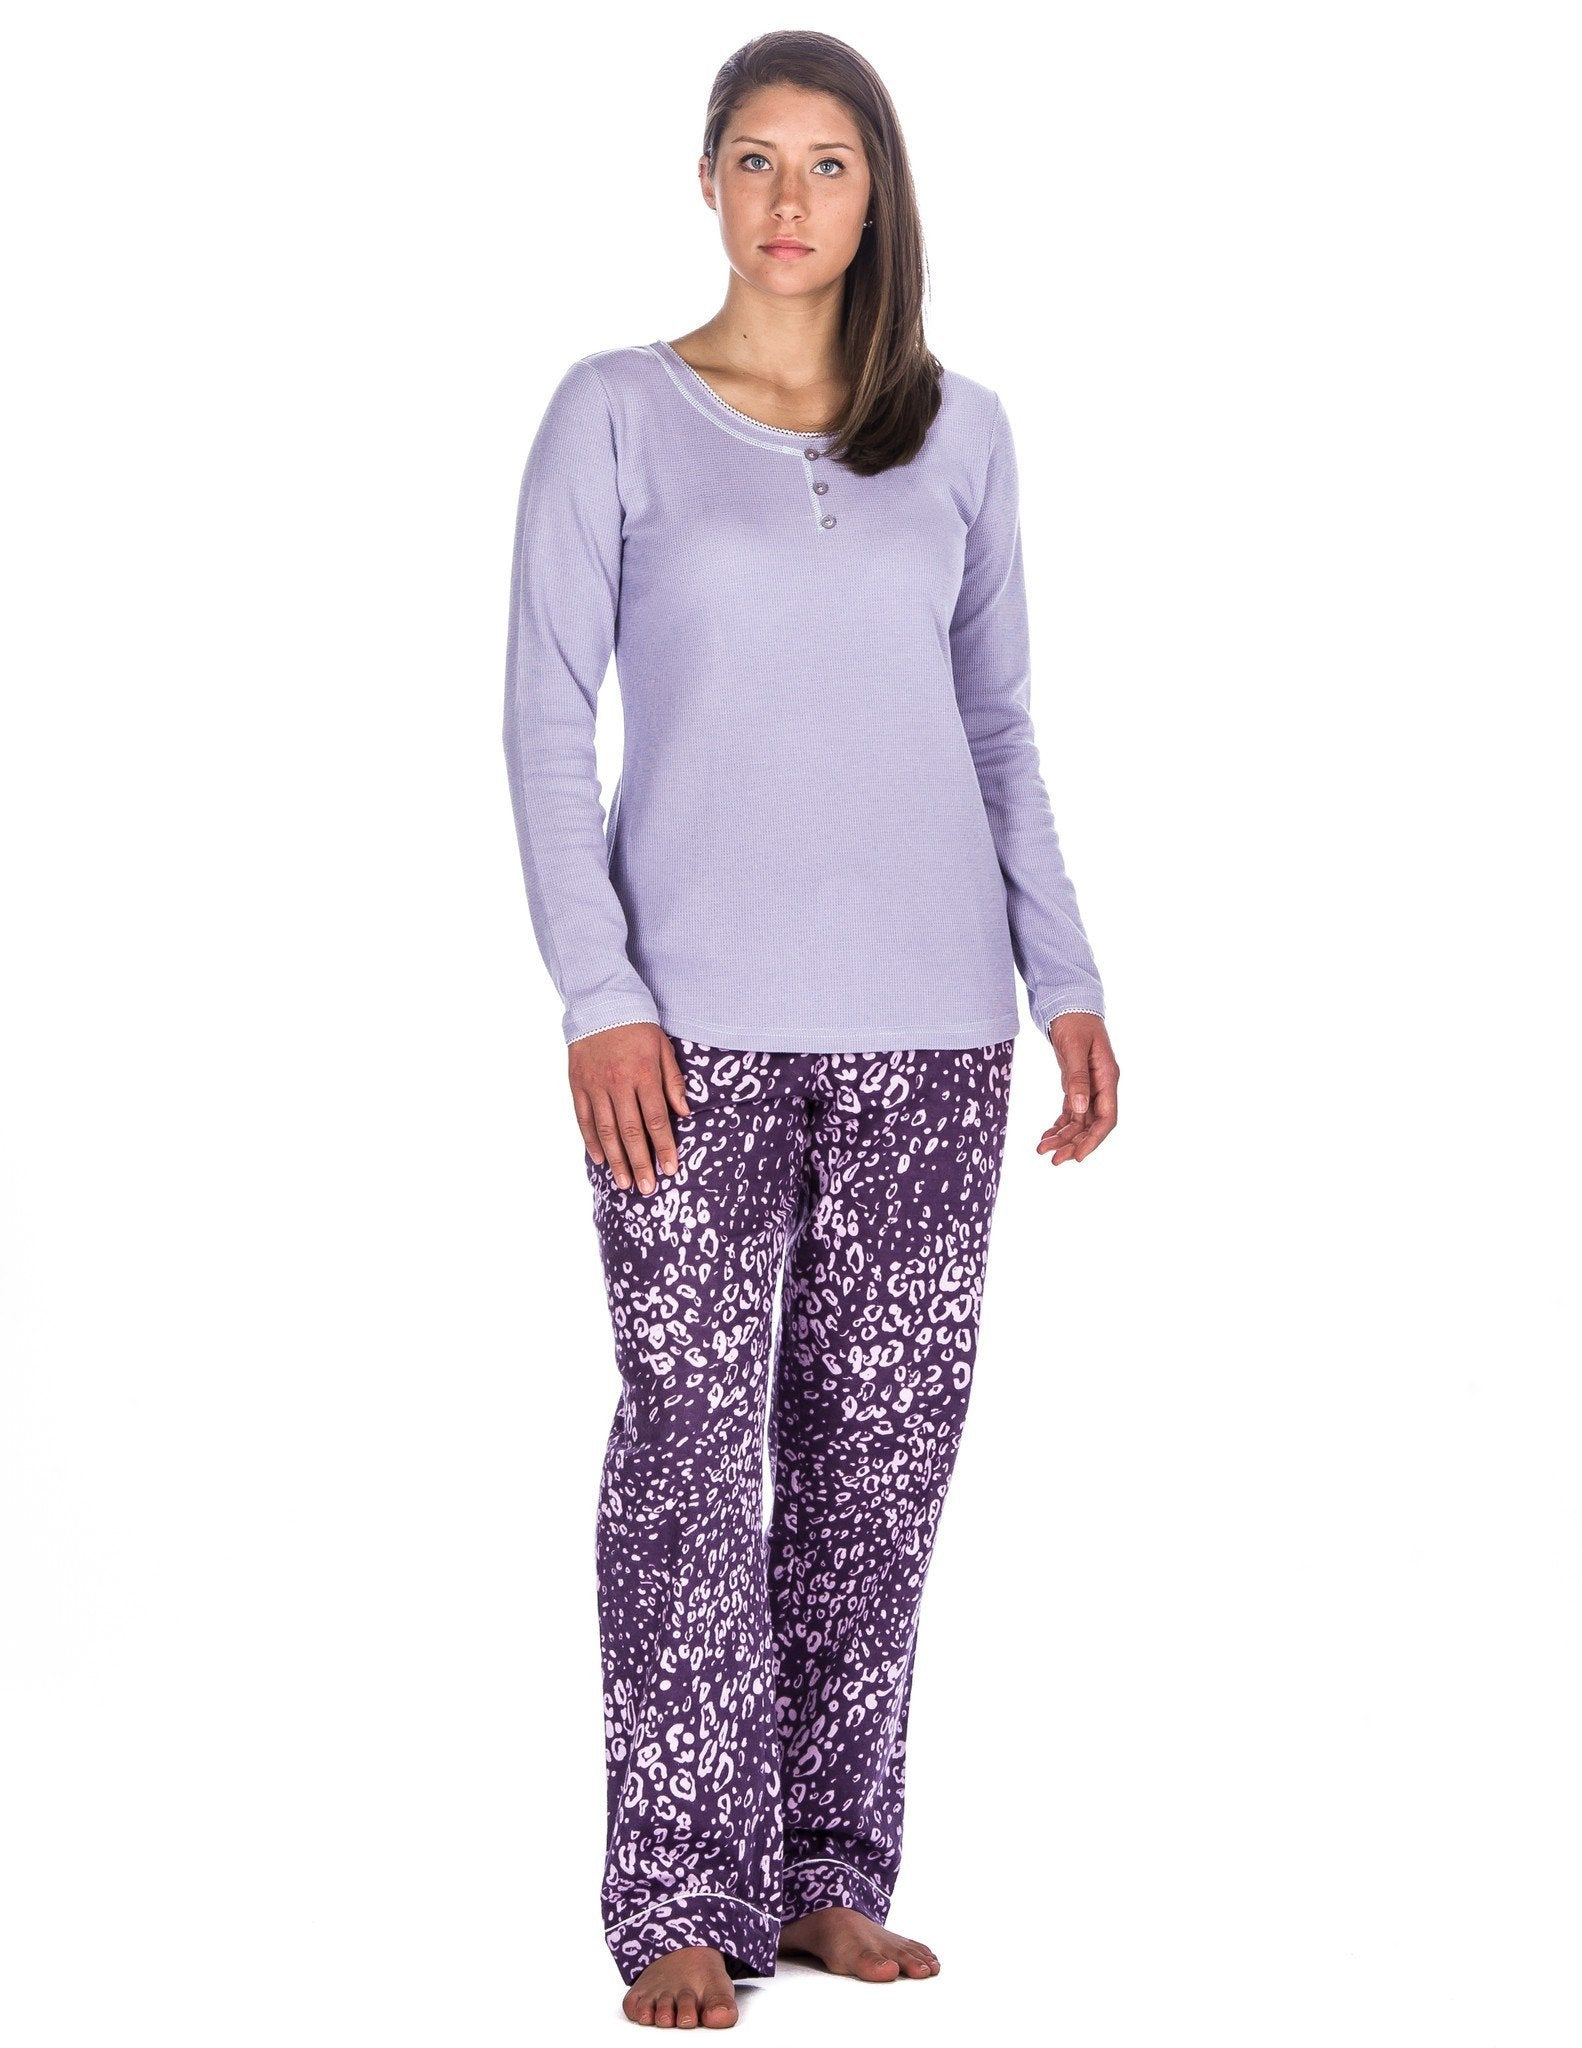 Relaxed Fit Womens Cotton Flannel Lounge Set with Crew Neck Top - Leopard Purple